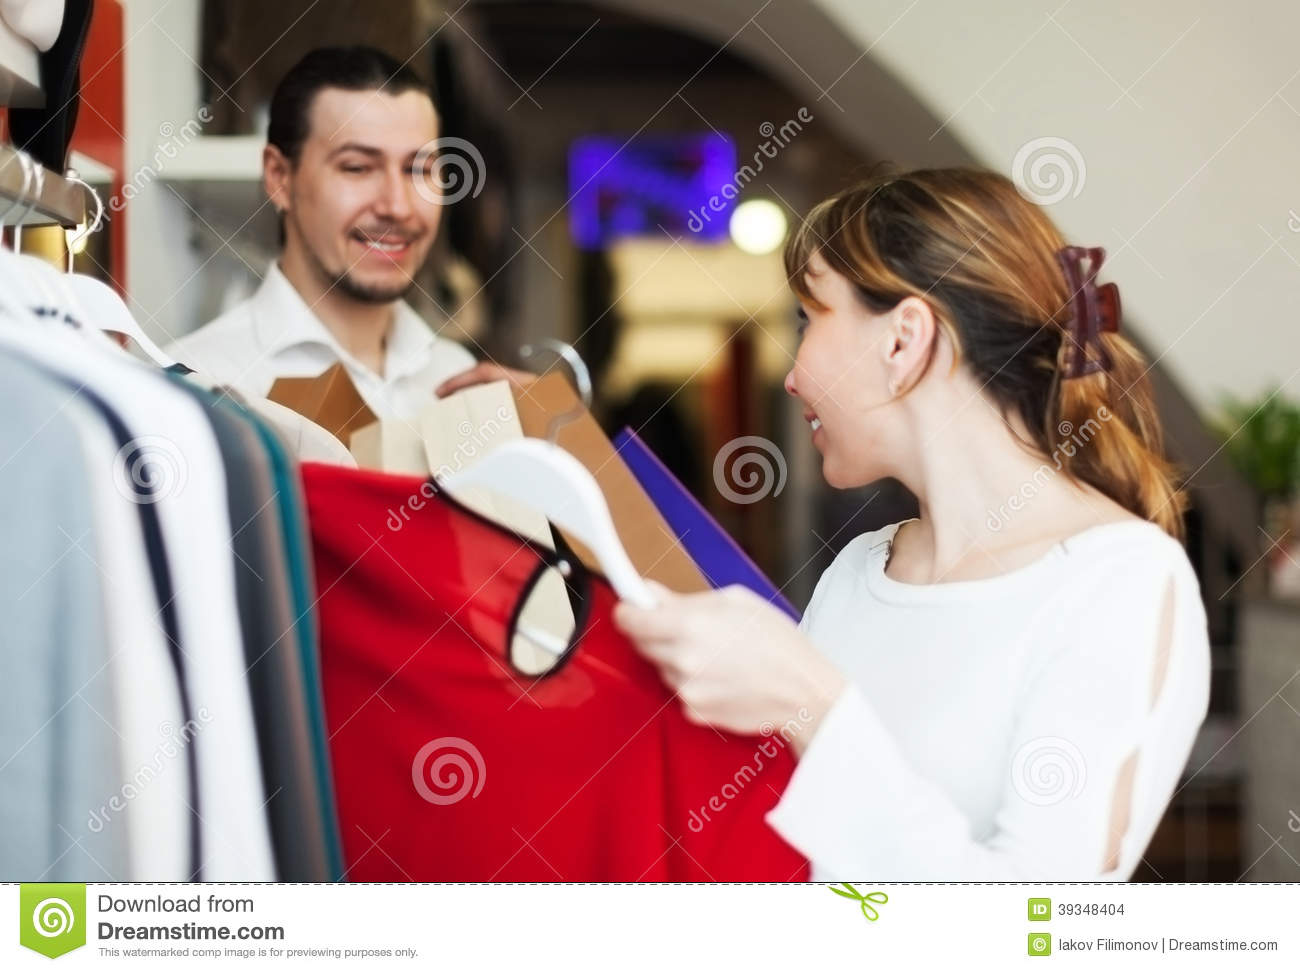 Find trendy fashion dresses, coats, pants, knitwear, shirts, sweaters, and more in our extensive women's clothing collection